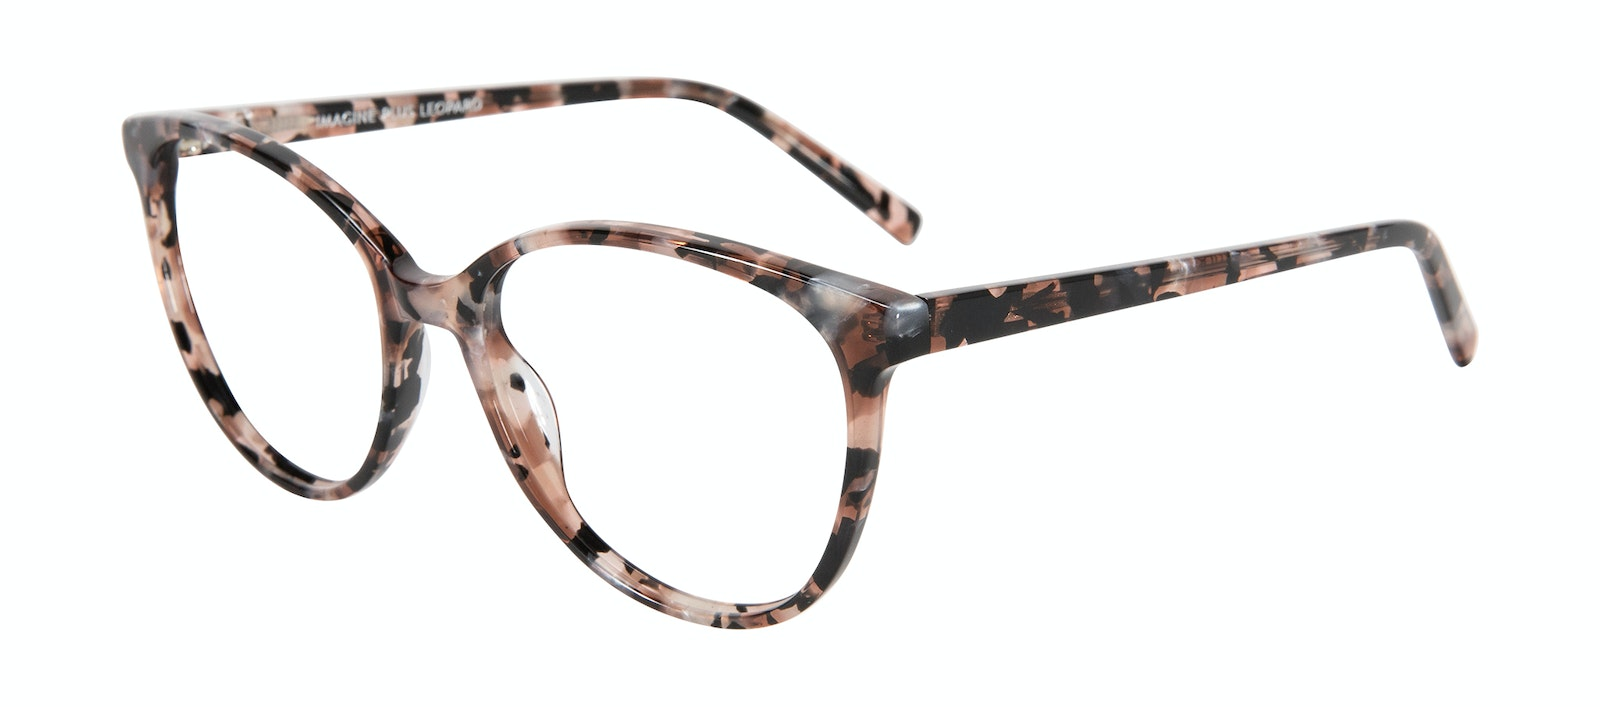 Affordable Fashion Glasses Cat Eye Eyeglasses Women Imagine XL Pink Tortoise Tilt